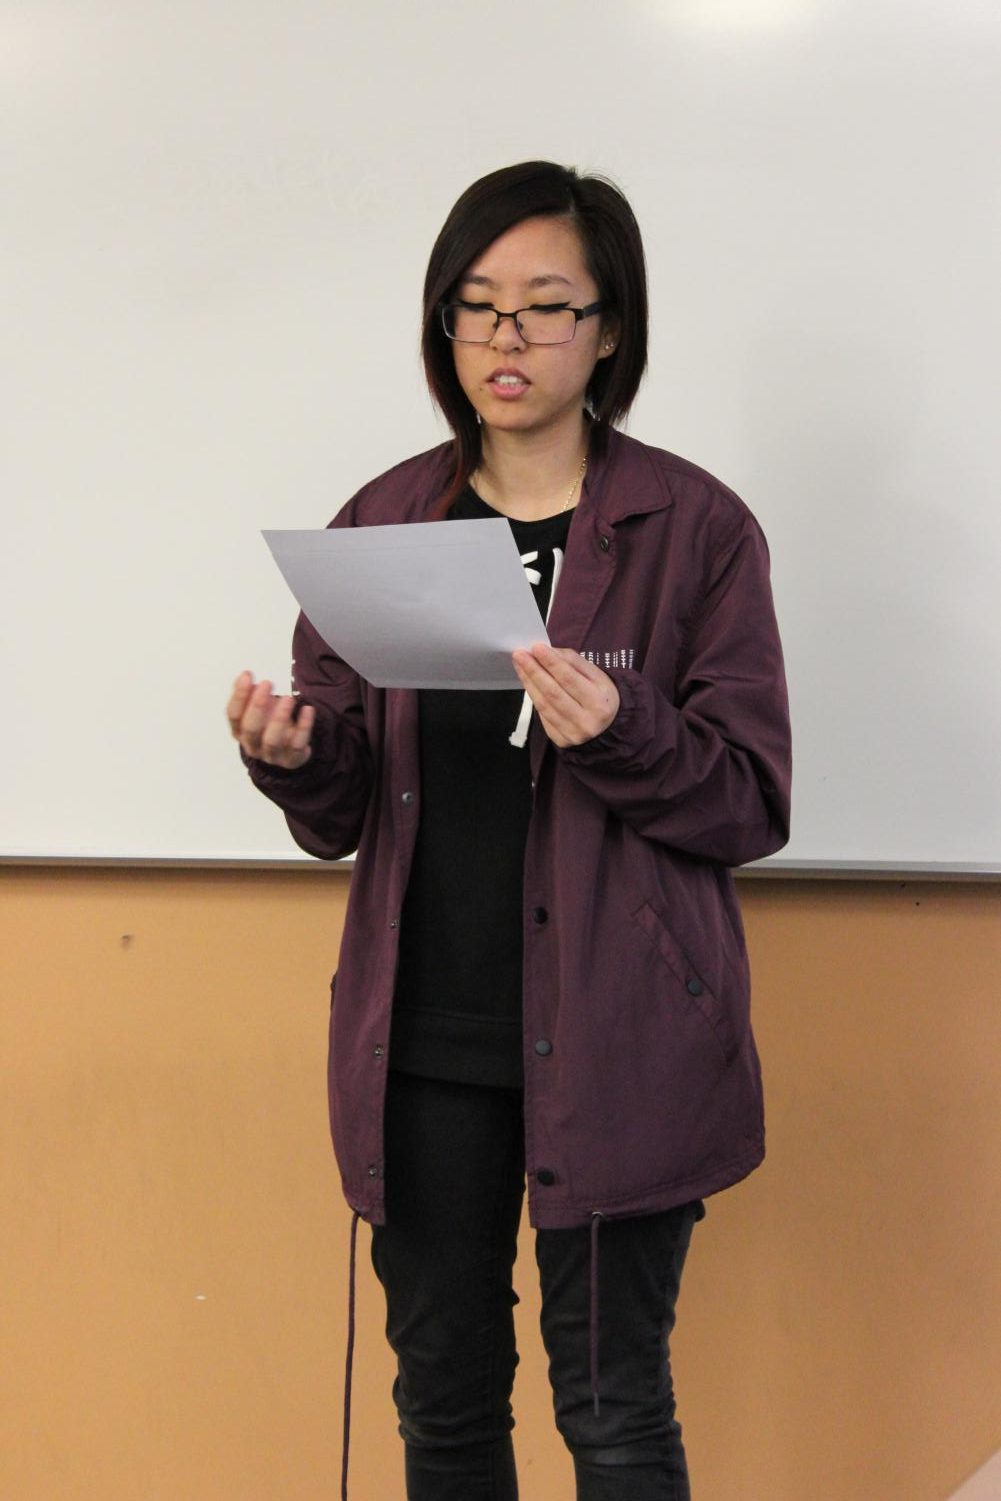 Student showcases her piece at the Literature Club Open Mic during U-hour, Thursday, Nov. 30.